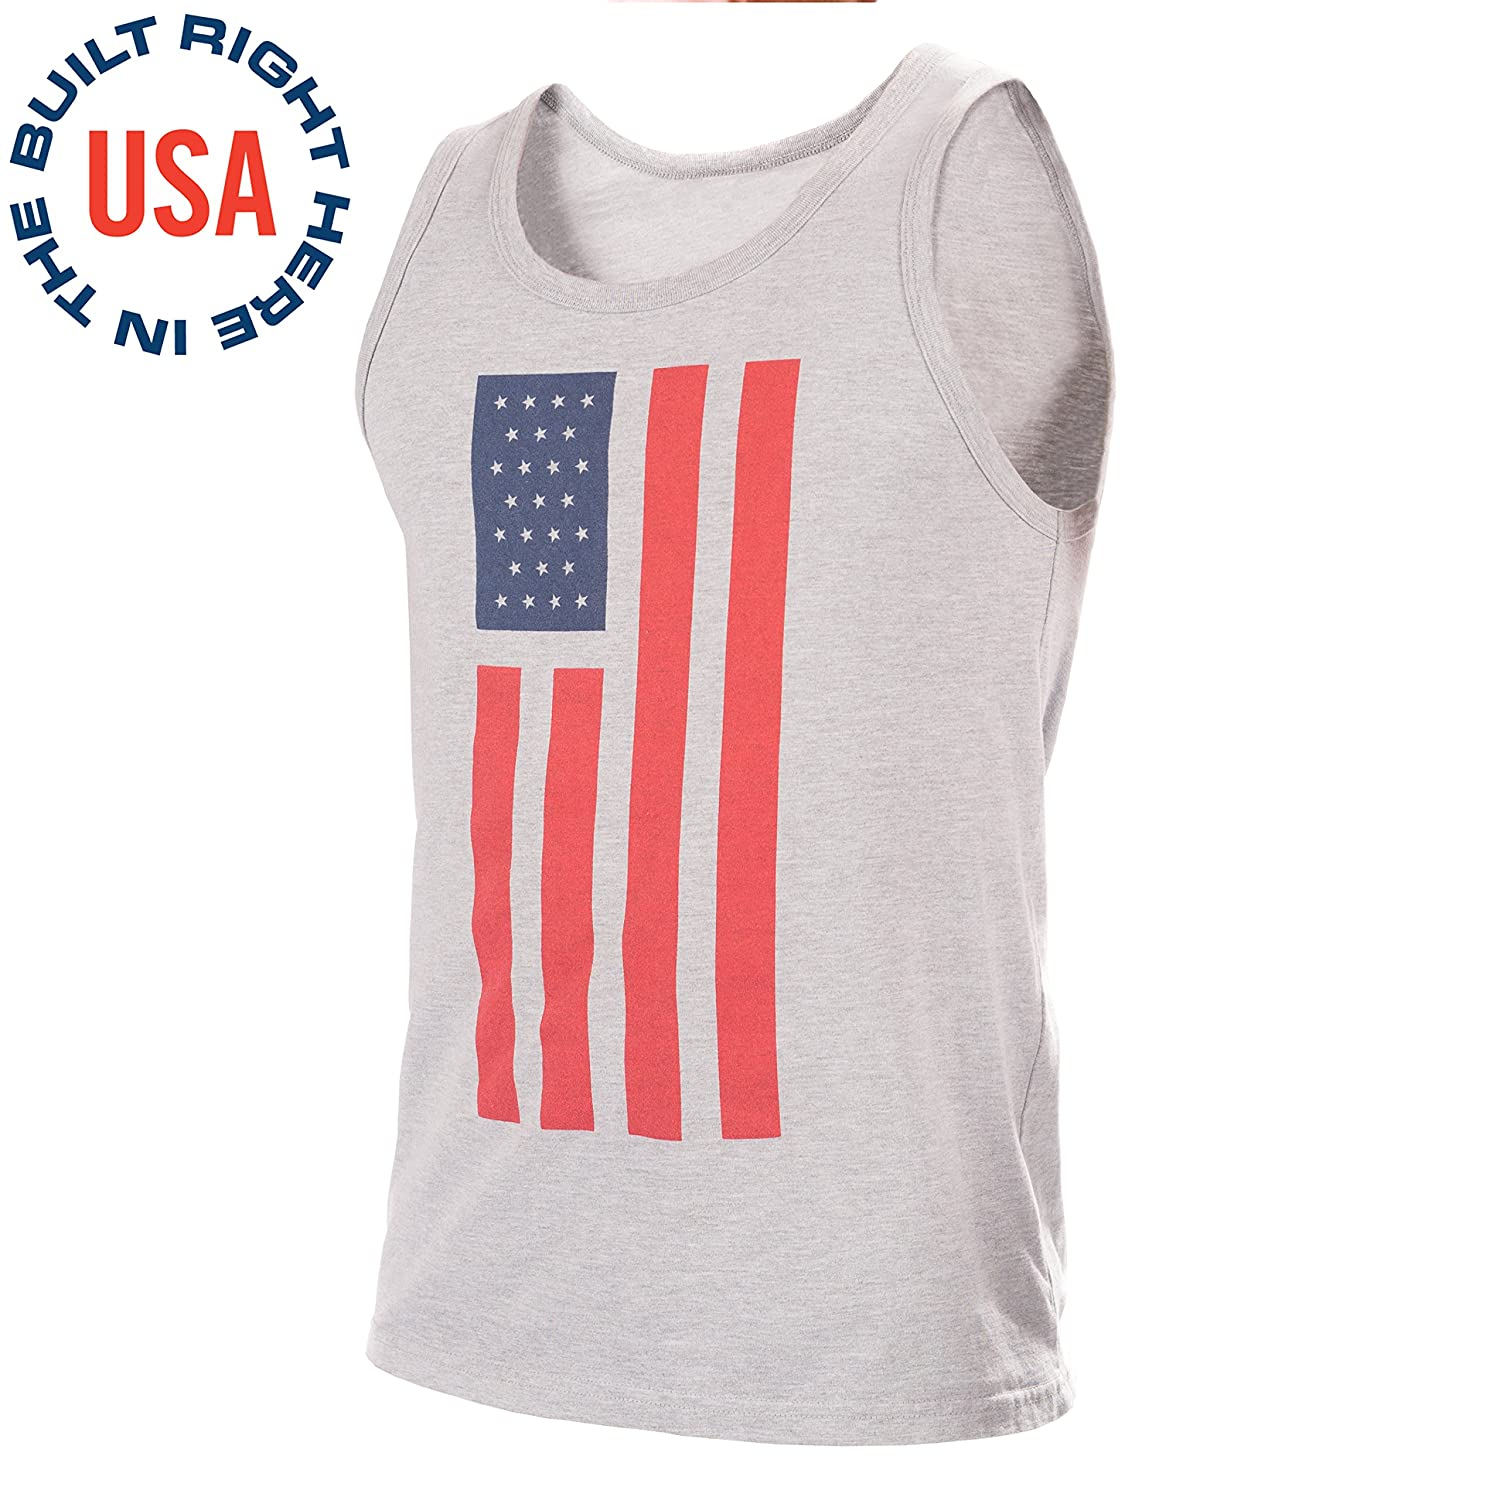 f509f6872b80 Amazon.com: Epivive Patriotic American Flag Tank Top Shirt: Red, White and  Gray Graphic Tanks for Men, Women, Teens, Boys & Girls - Large: Sports &  Outdoors